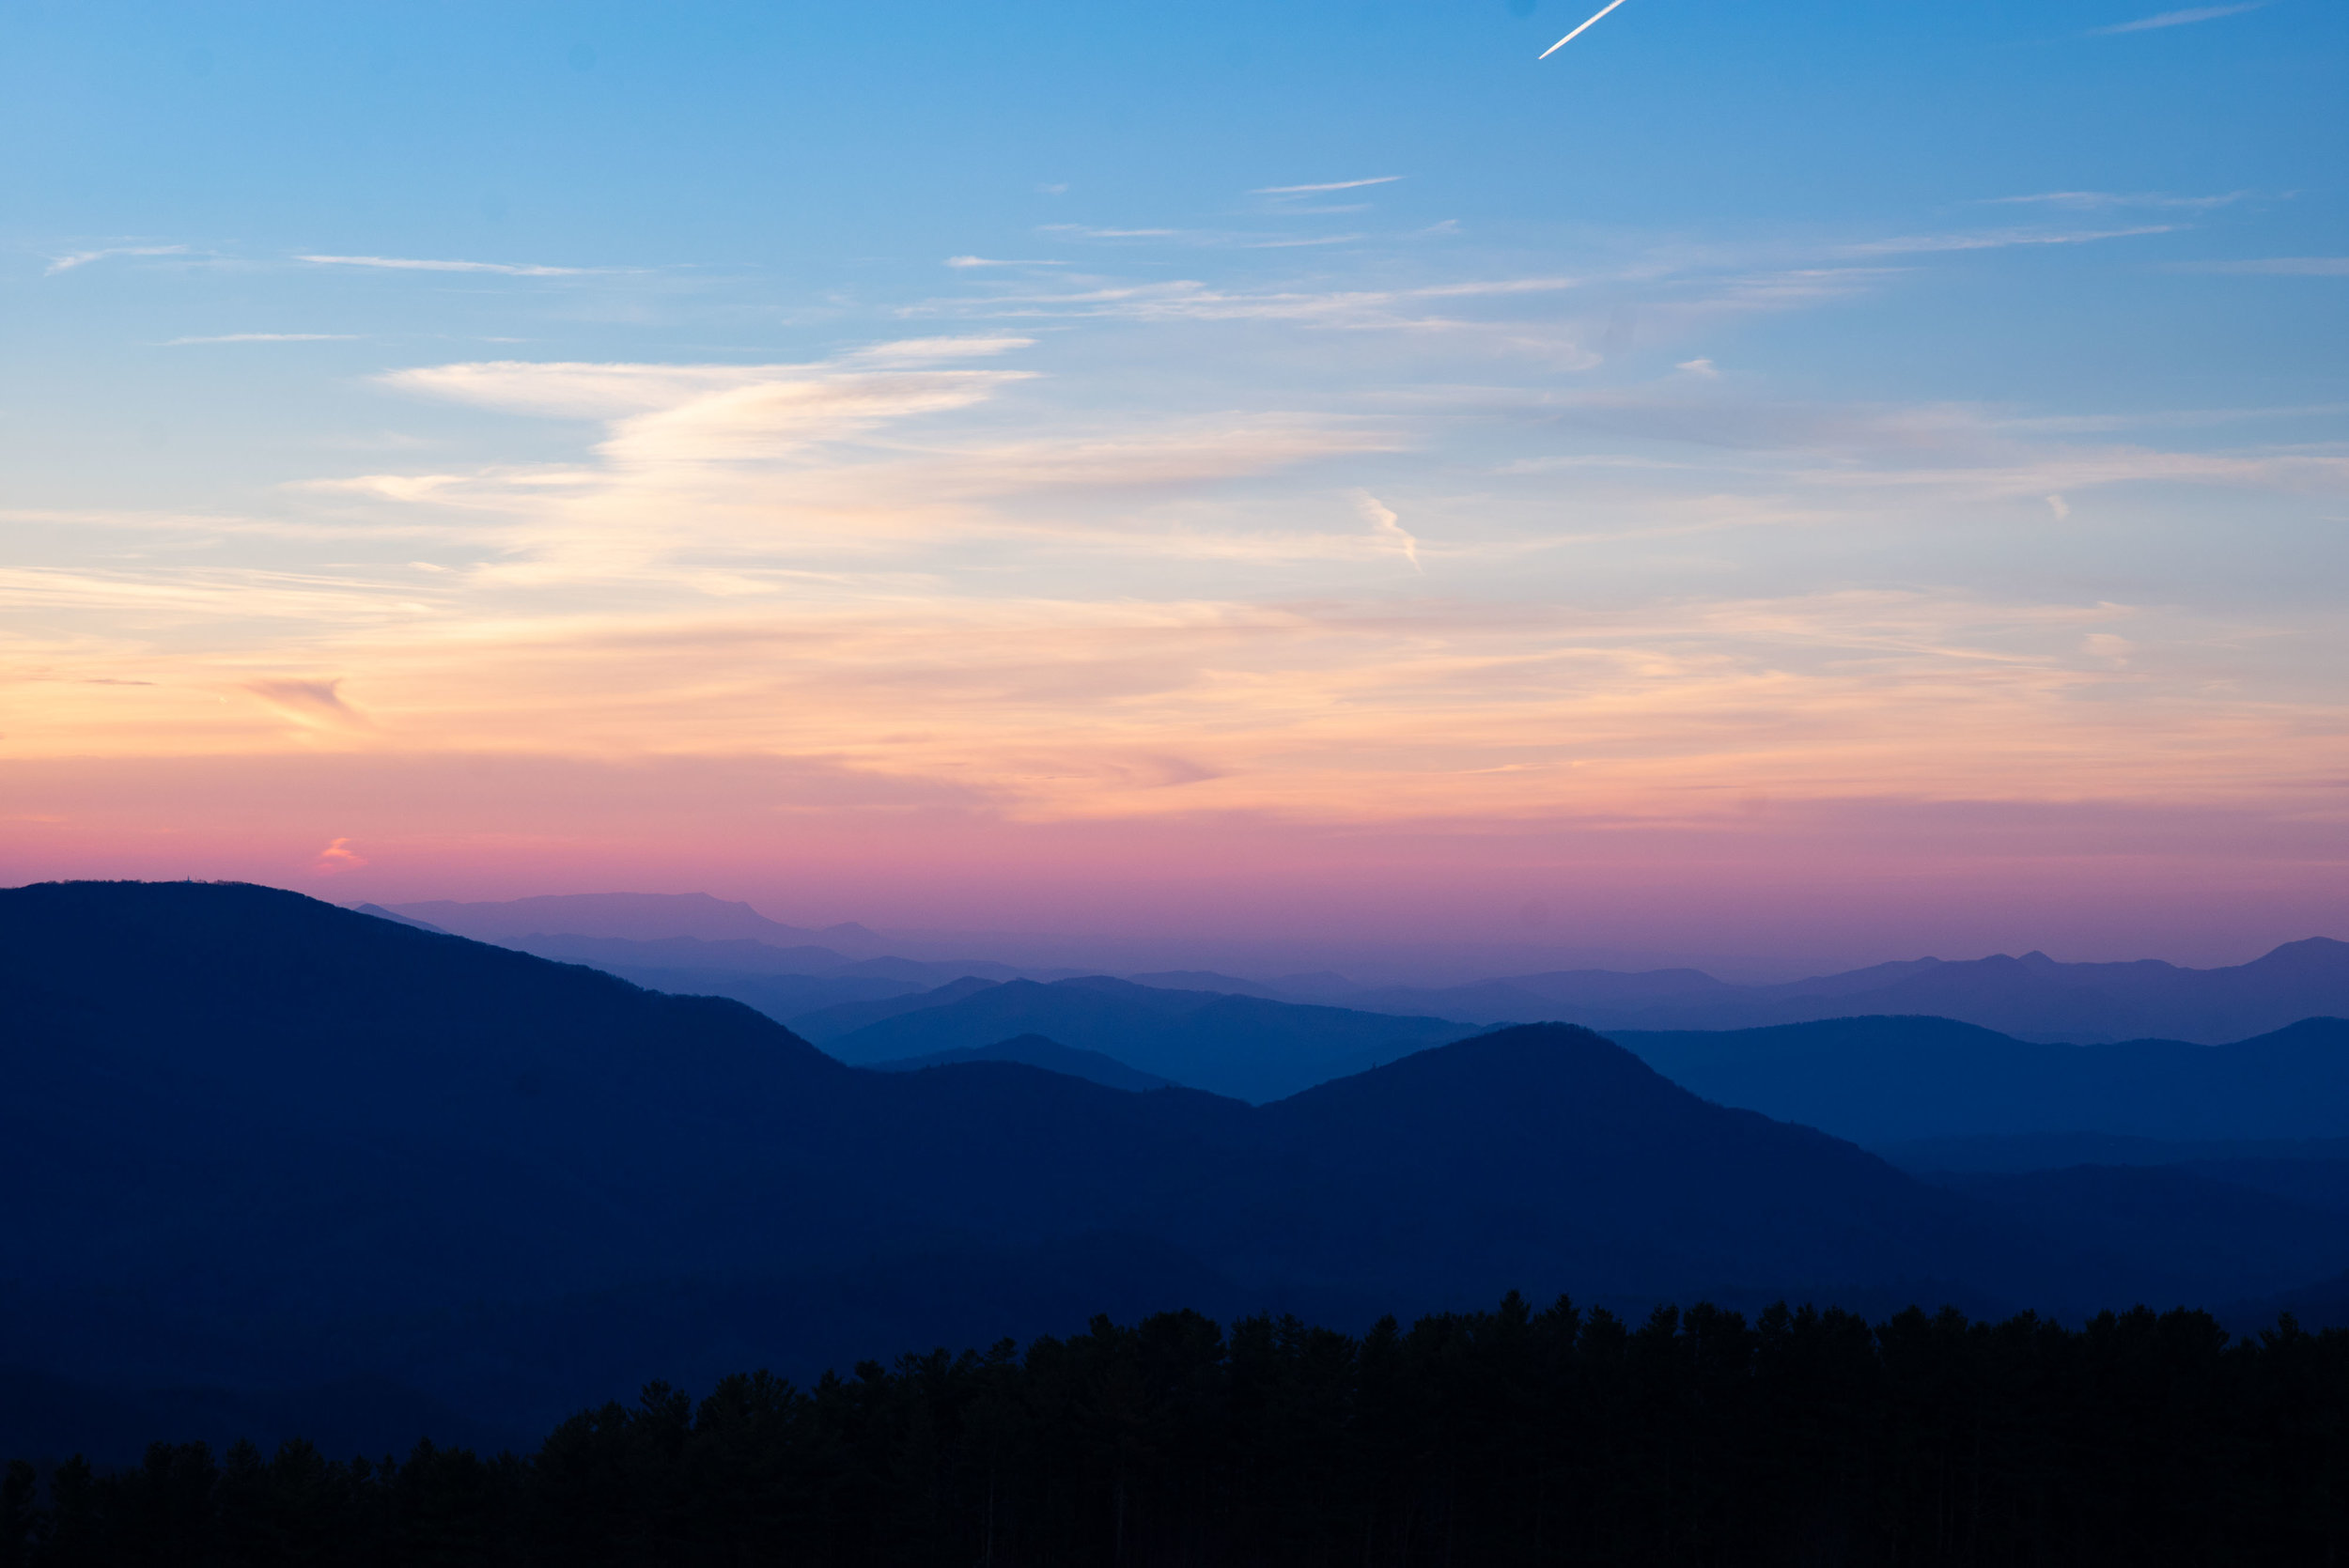 Sunset from Max Patch, North Carolina